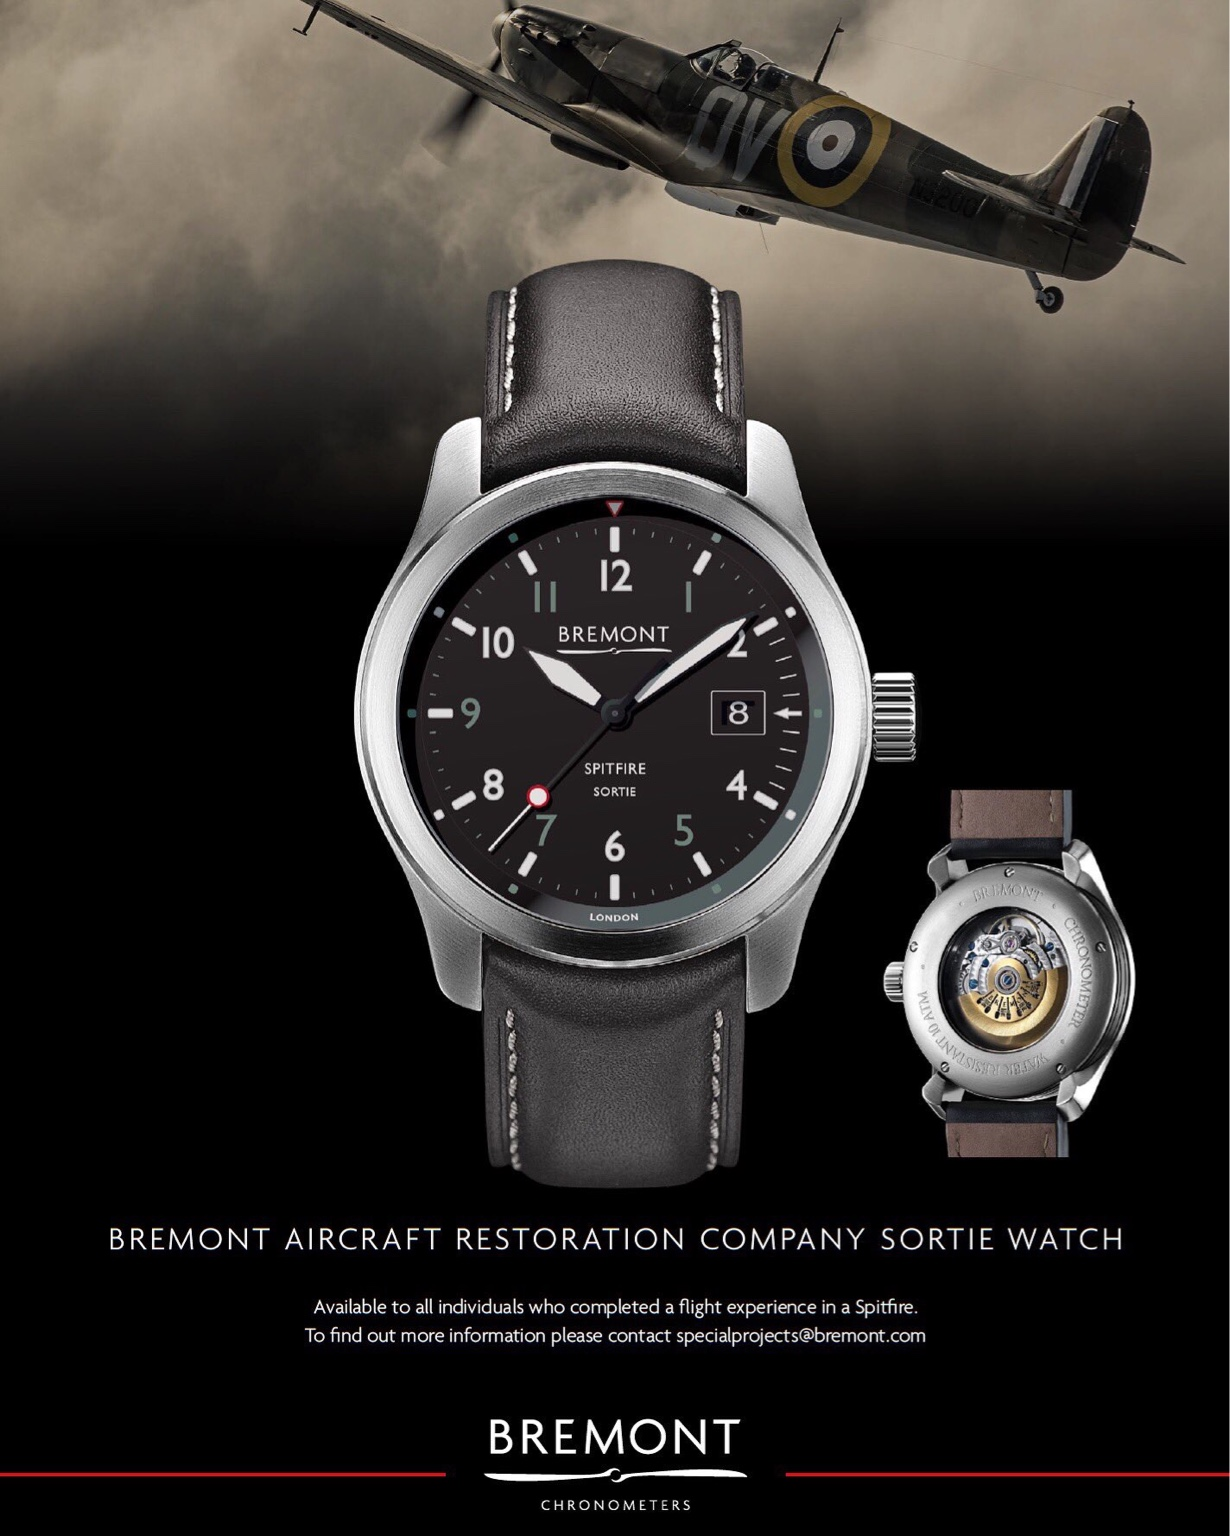 New Spitfire Watches from Partnership with Aircraft